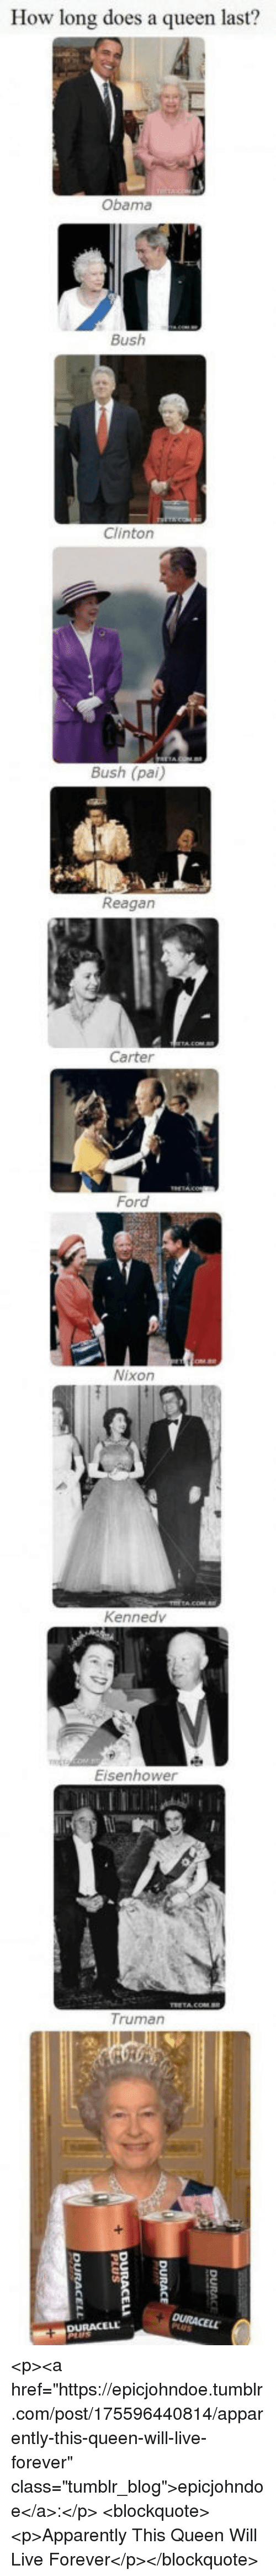 "clinton bush: How long does a queen last?  Obama  Bush  Clinton  Bush (pai)  Reagan  Carter  Ford  Nixon  Kennedv  Eisenhower  Truman <p><a href=""https://epicjohndoe.tumblr.com/post/175596440814/apparently-this-queen-will-live-forever"" class=""tumblr_blog"">epicjohndoe</a>:</p>  <blockquote><p>Apparently This Queen Will Live Forever</p></blockquote>"